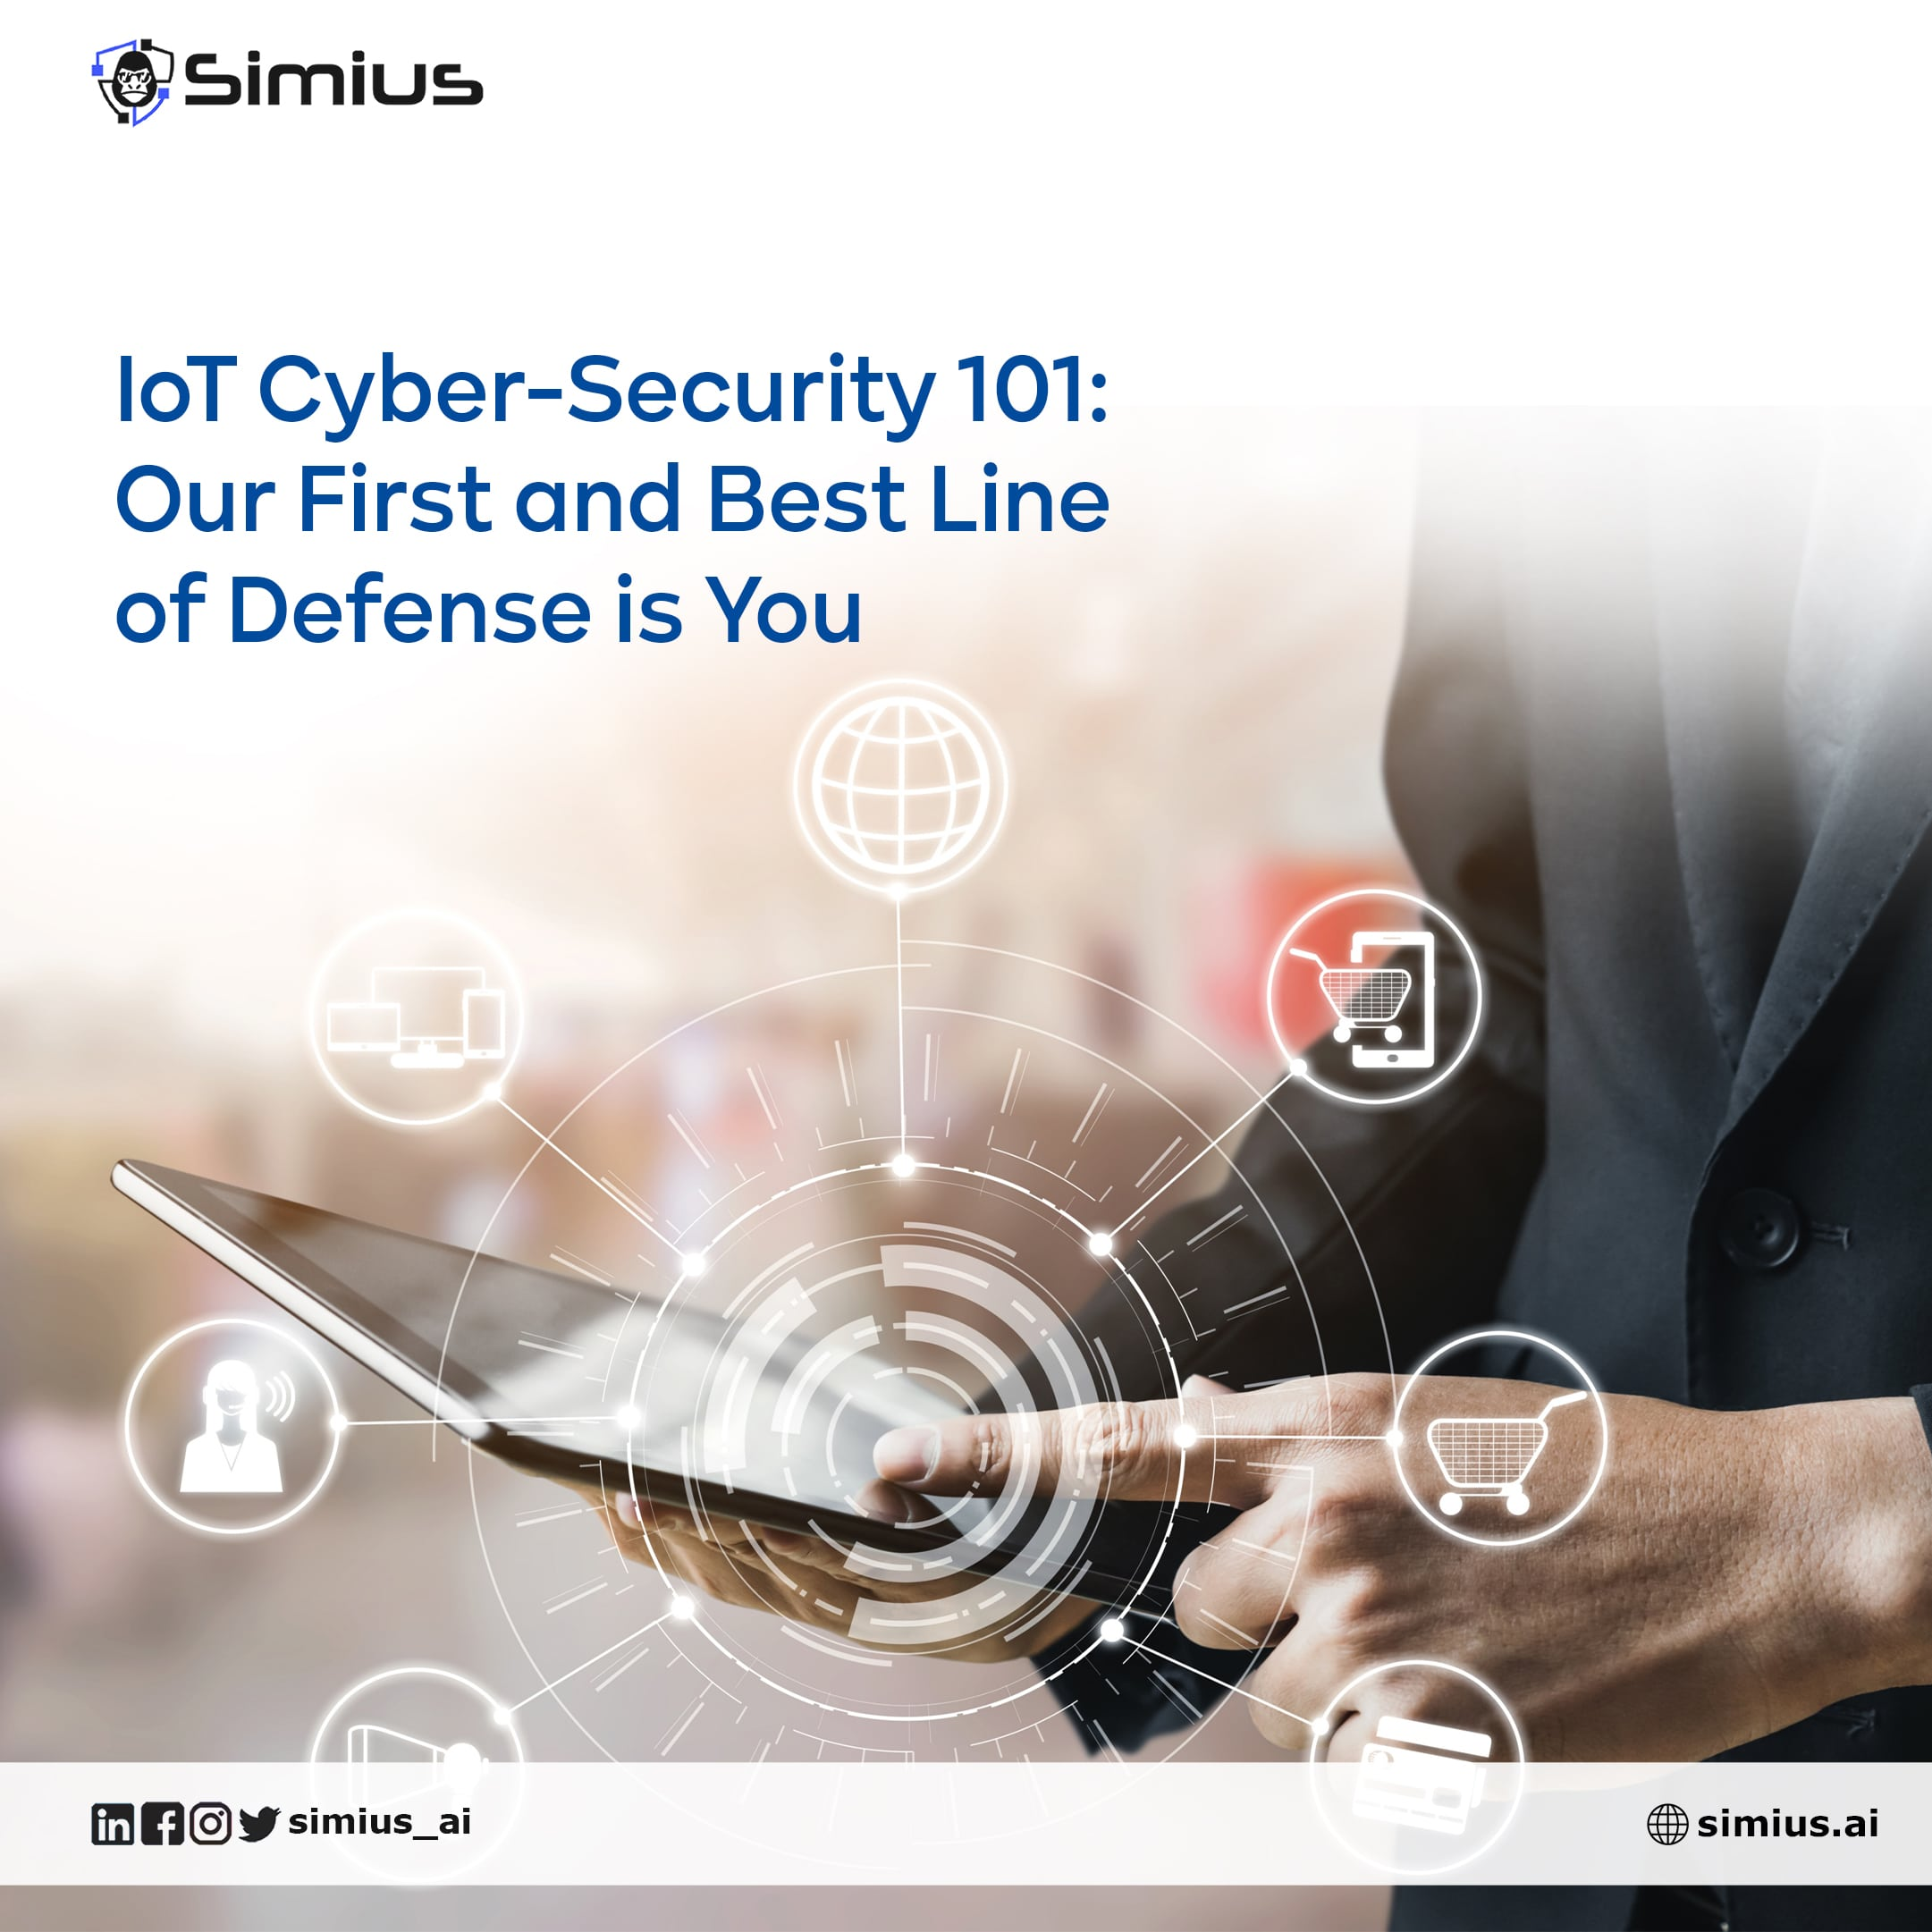 IoT Cyber-Security 101: Our First and Best Line of Defense is You